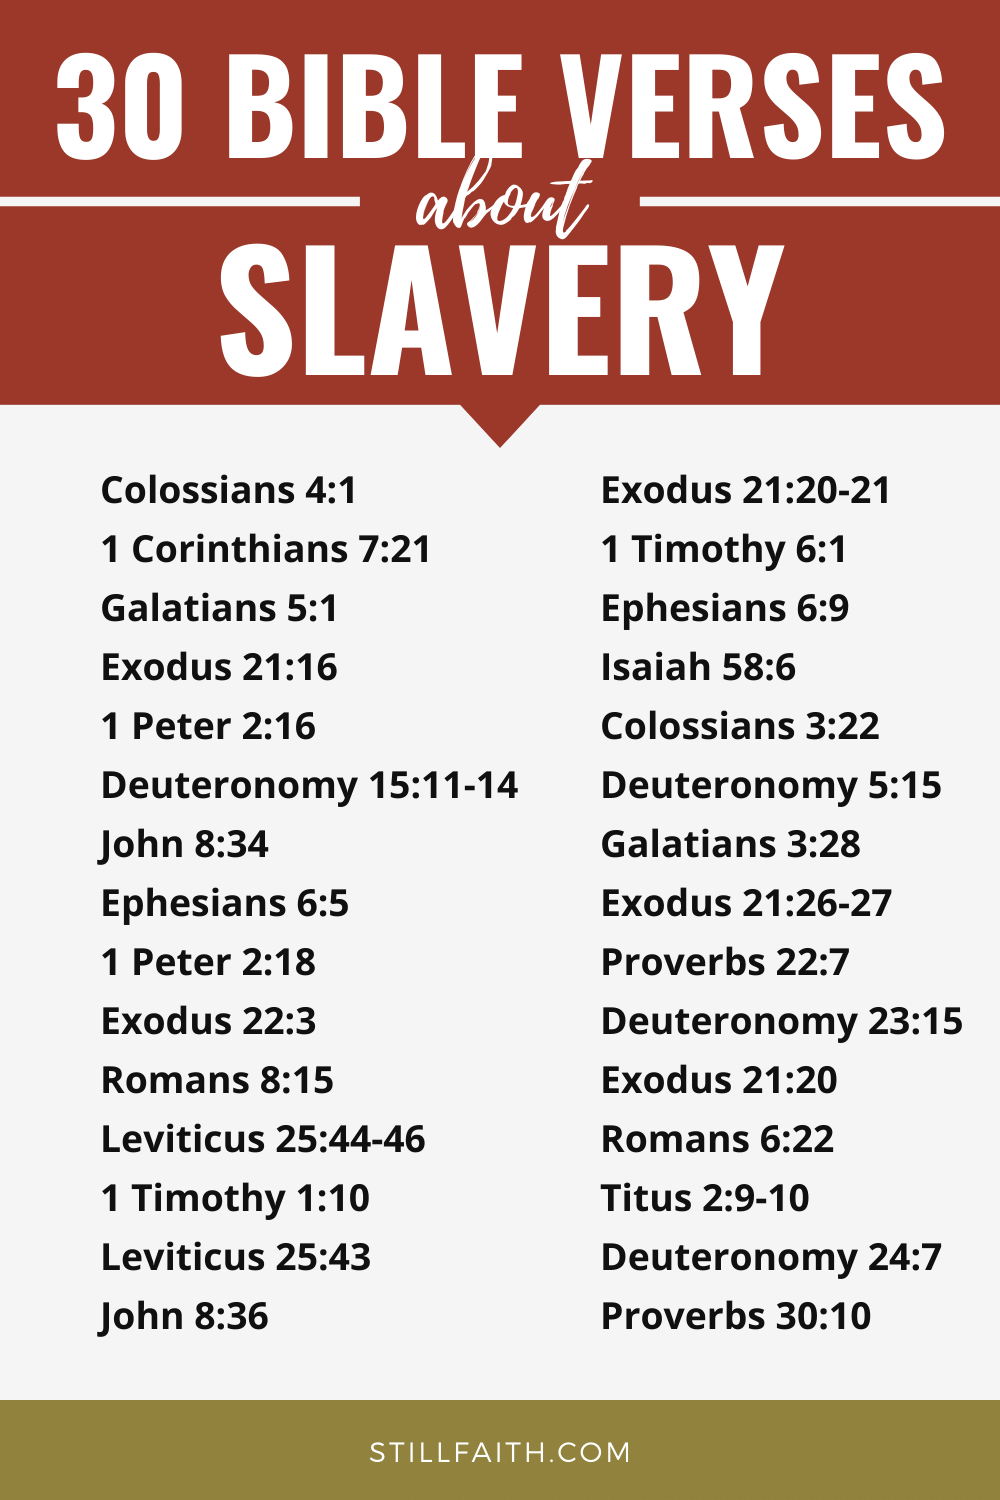 101 Bible Verses about Slavery